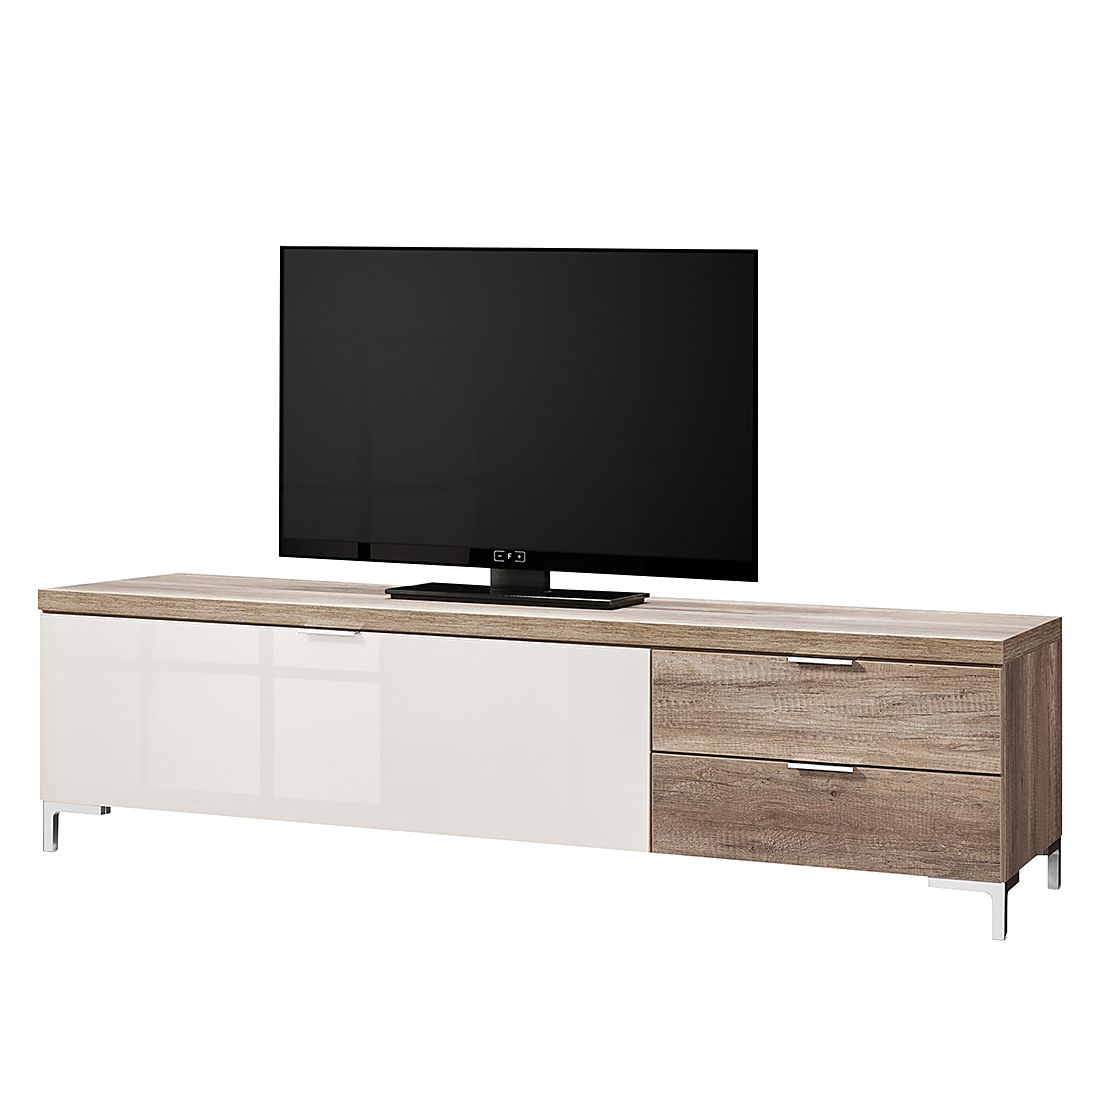 tv lowboard cleo iii wildeiche dekor glas sand chromf e cs schmal g nstig. Black Bedroom Furniture Sets. Home Design Ideas